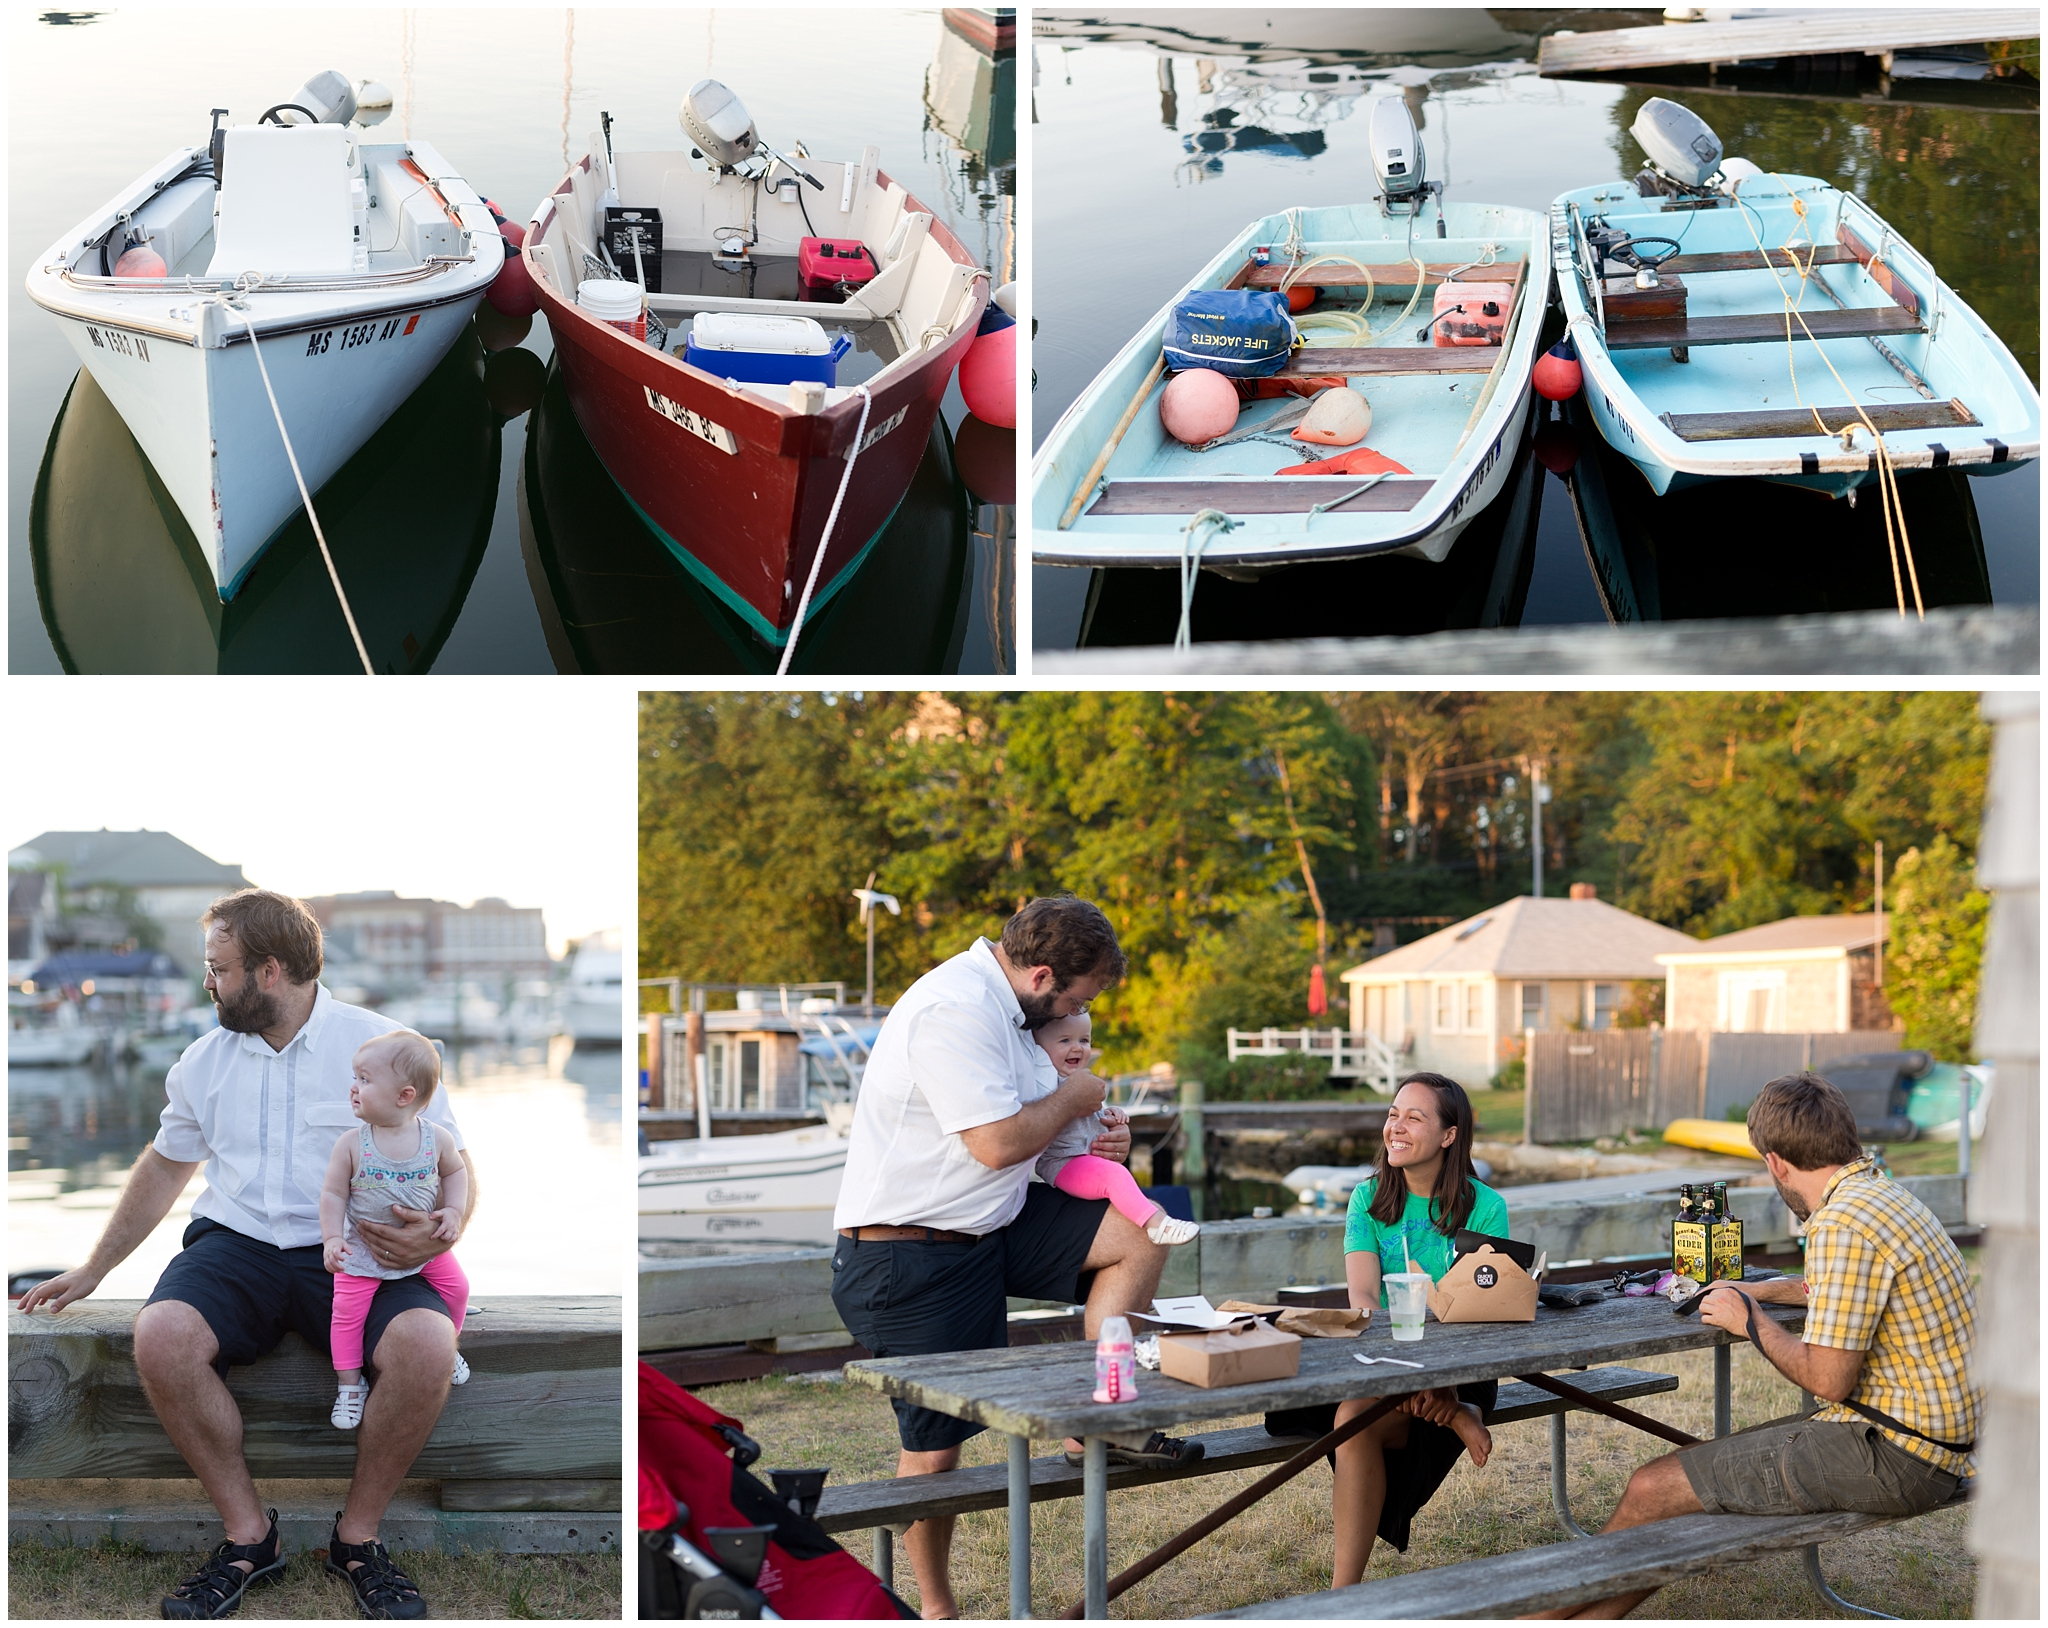 boats and family picnic in Woods Hole, Massachusetts